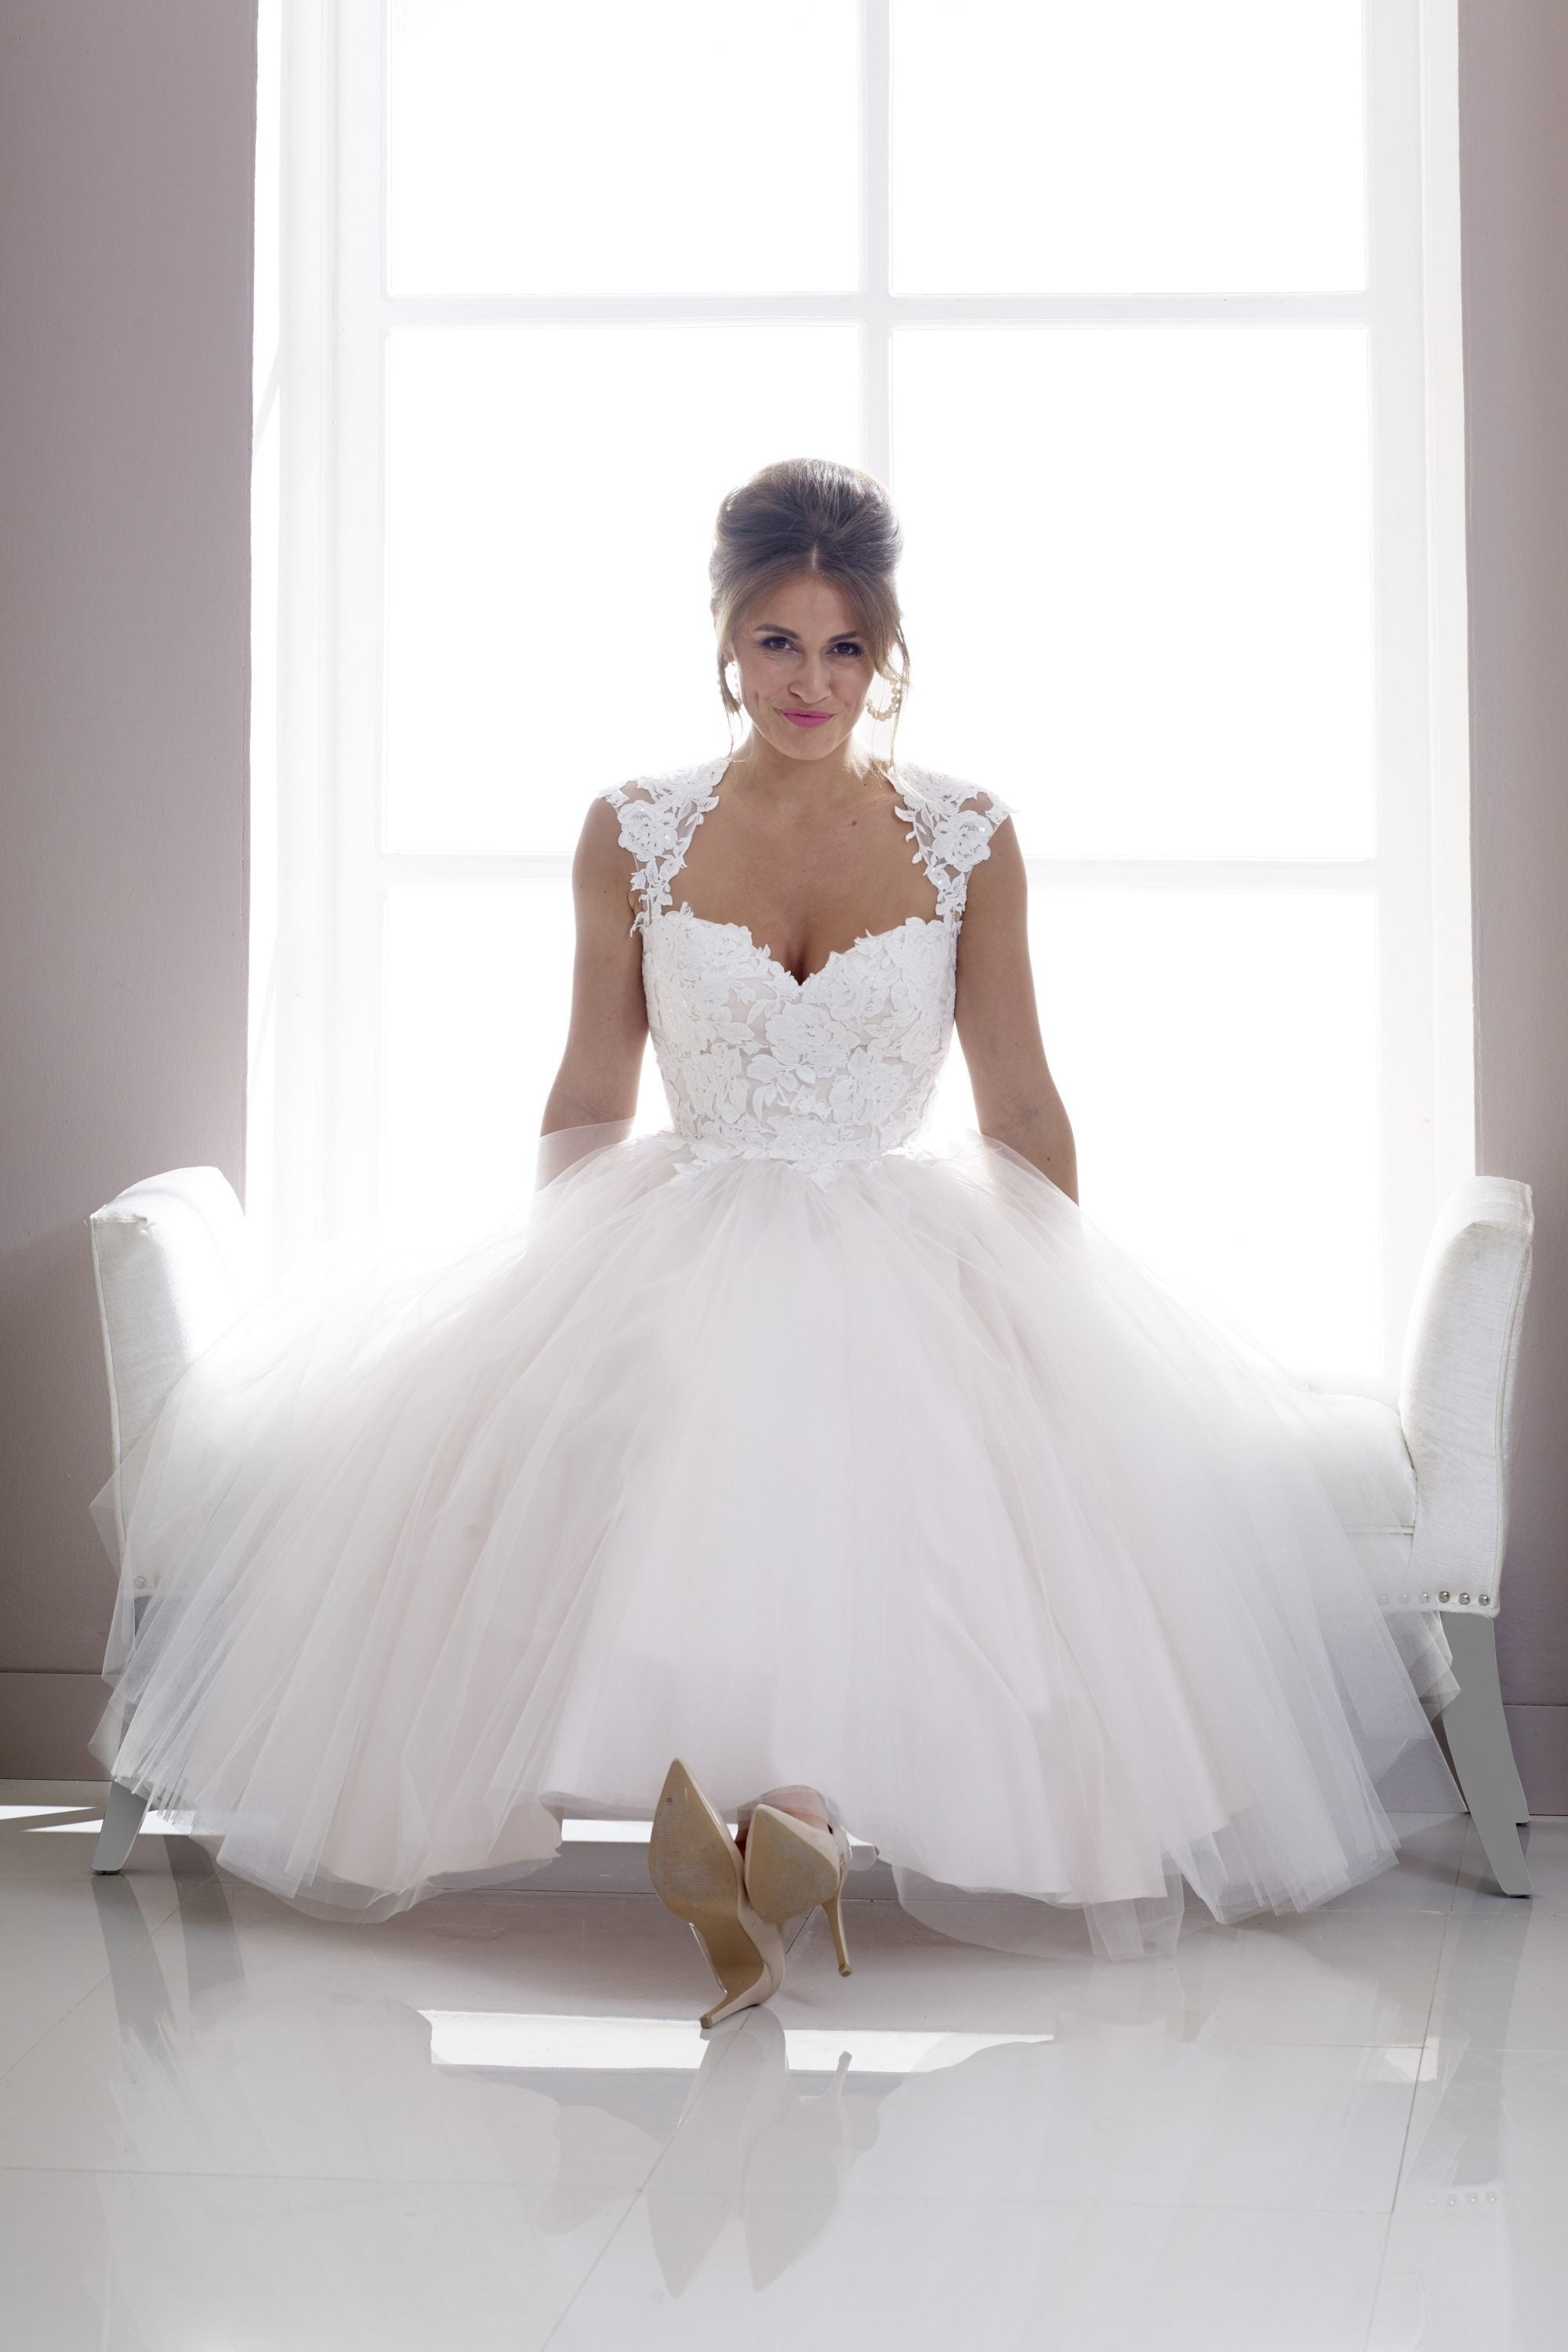 Why not try the Sally wedding dress at your appointment